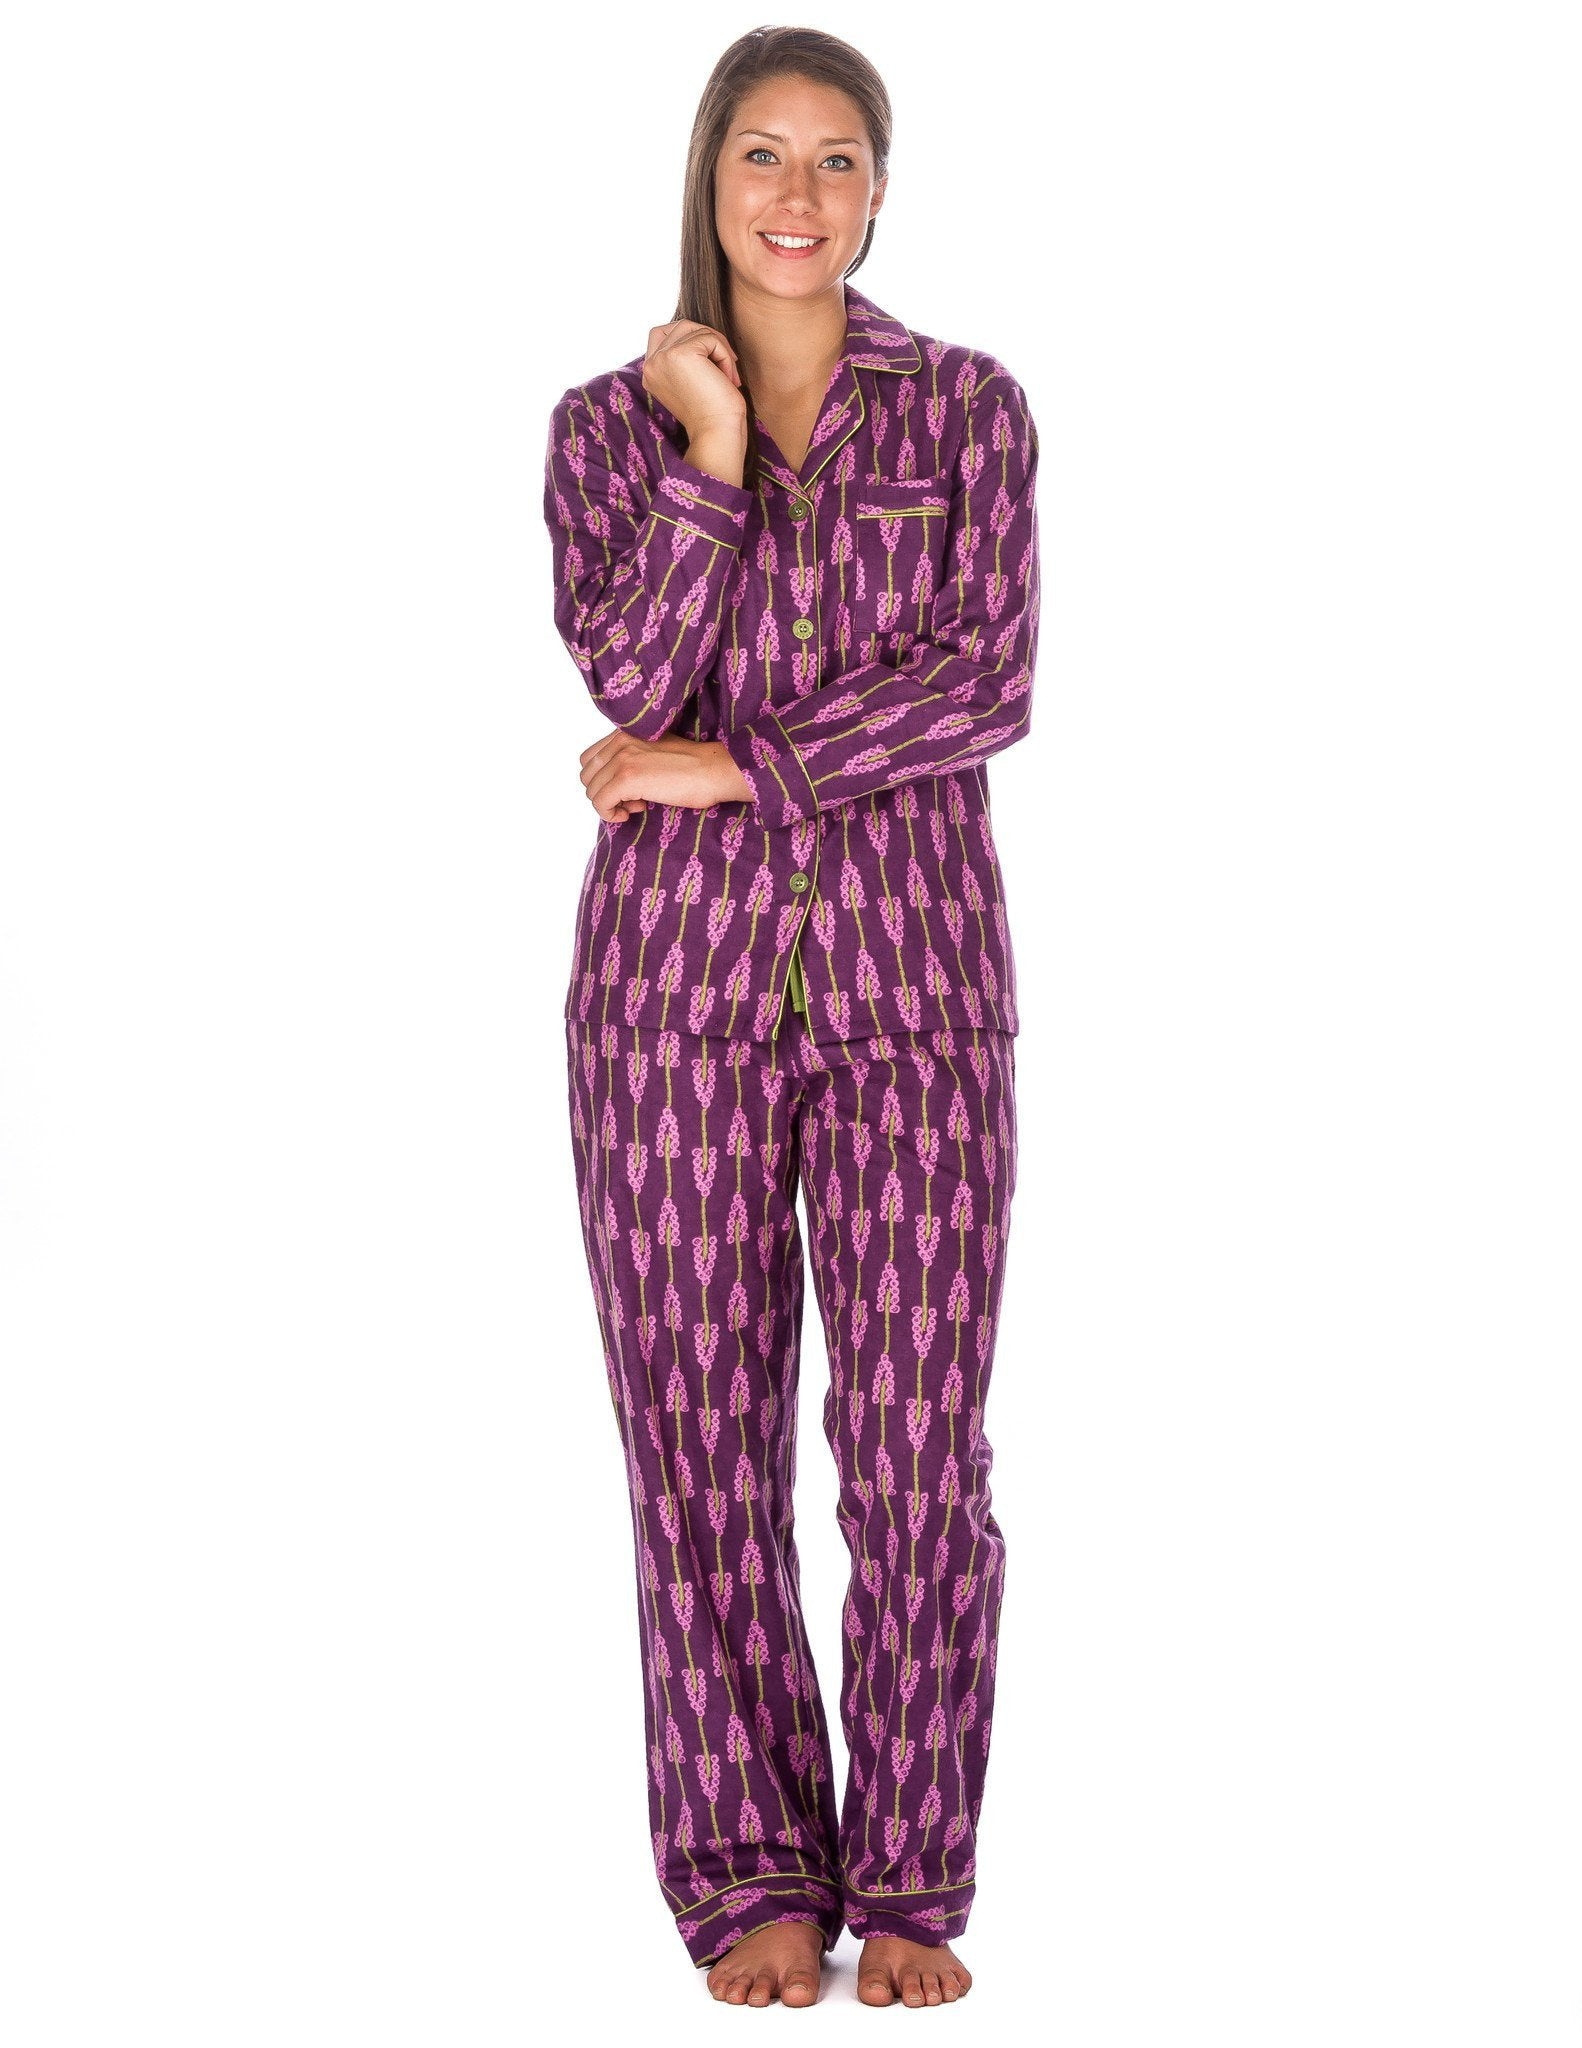 Women's Premium 100% Cotton Flannel Pajama Sleepwear Set (Relaxed Fit) - Grape Vines - Purple